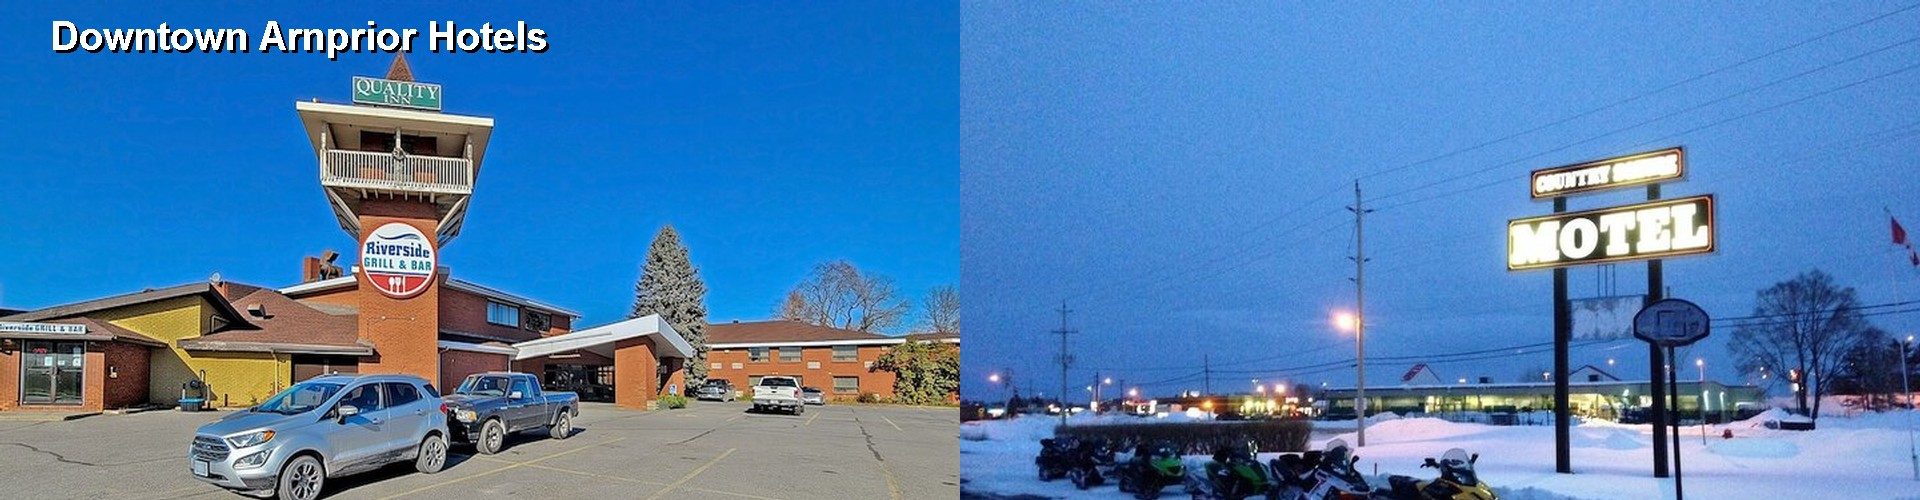 5 Best Hotels near Downtown Arnprior